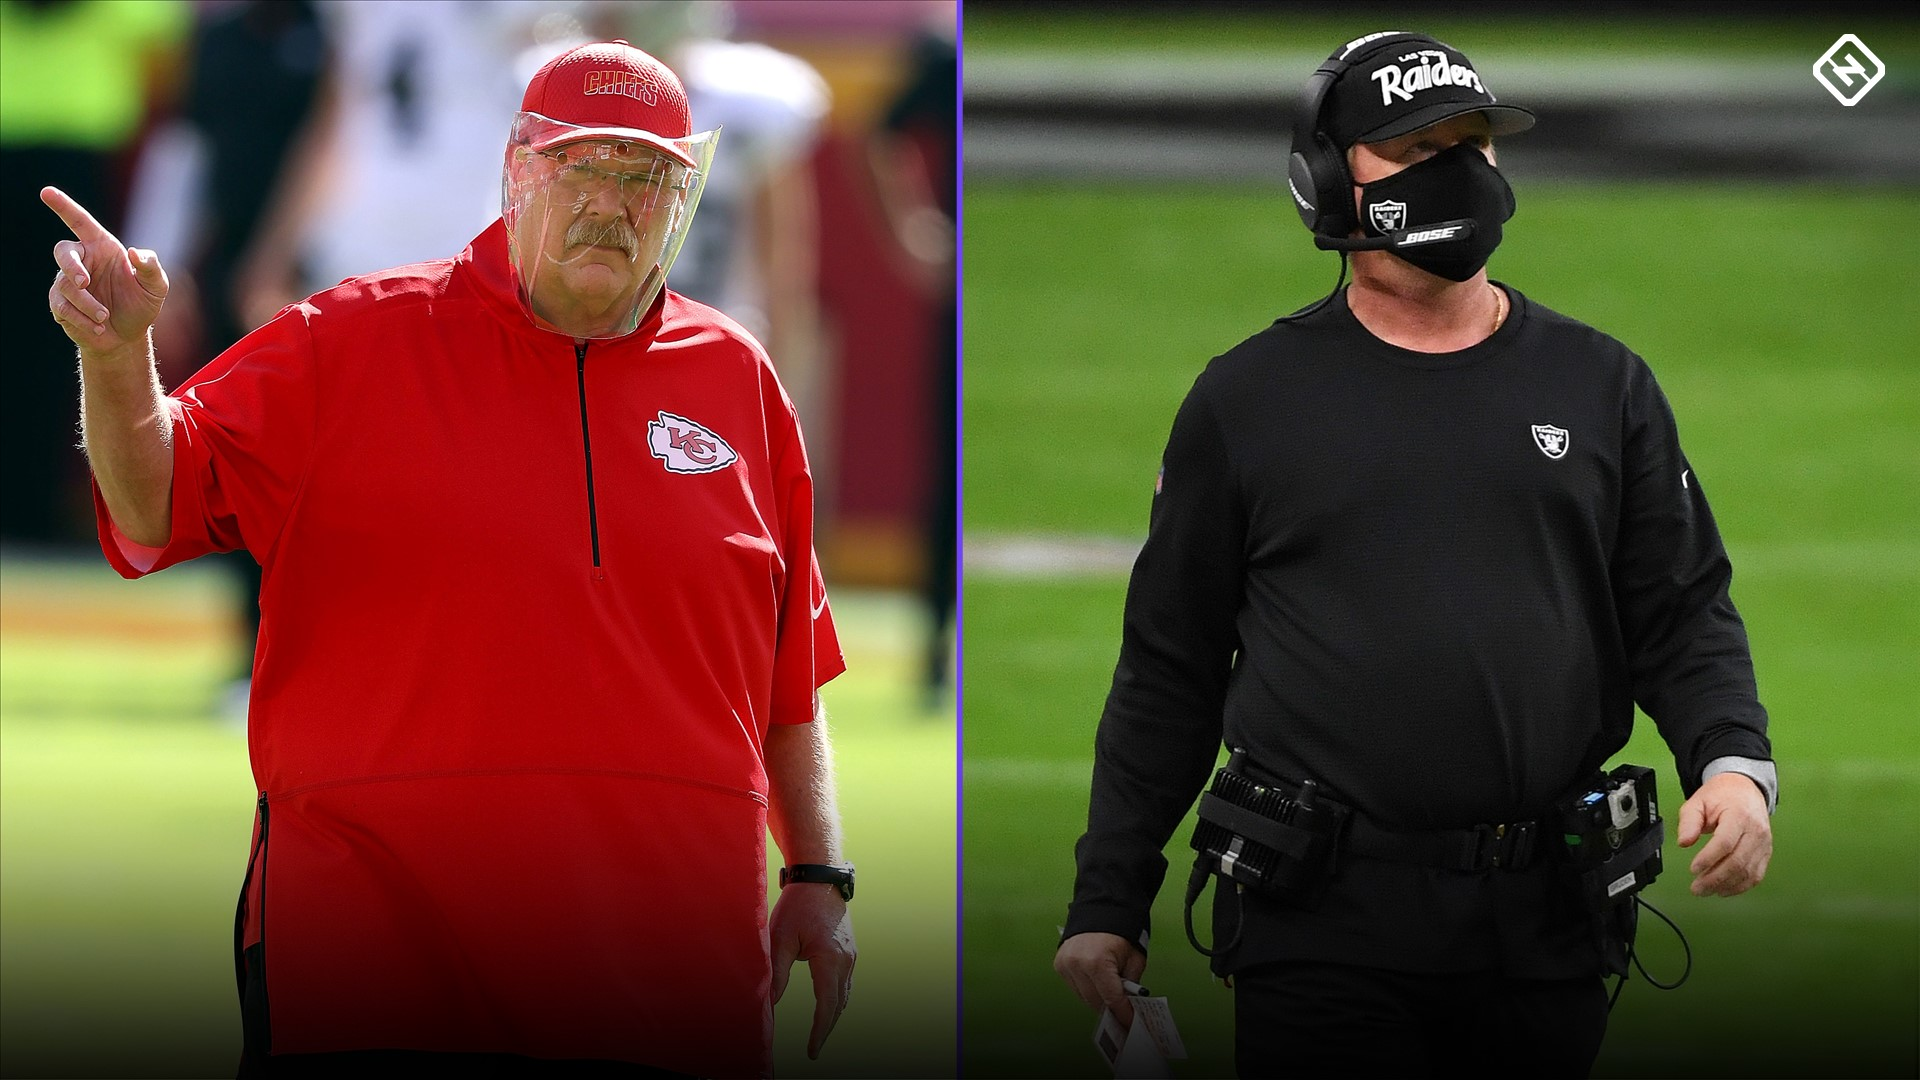 Andy Reid Jon Gruden are the faces of the NFLs face mask follies in 2020